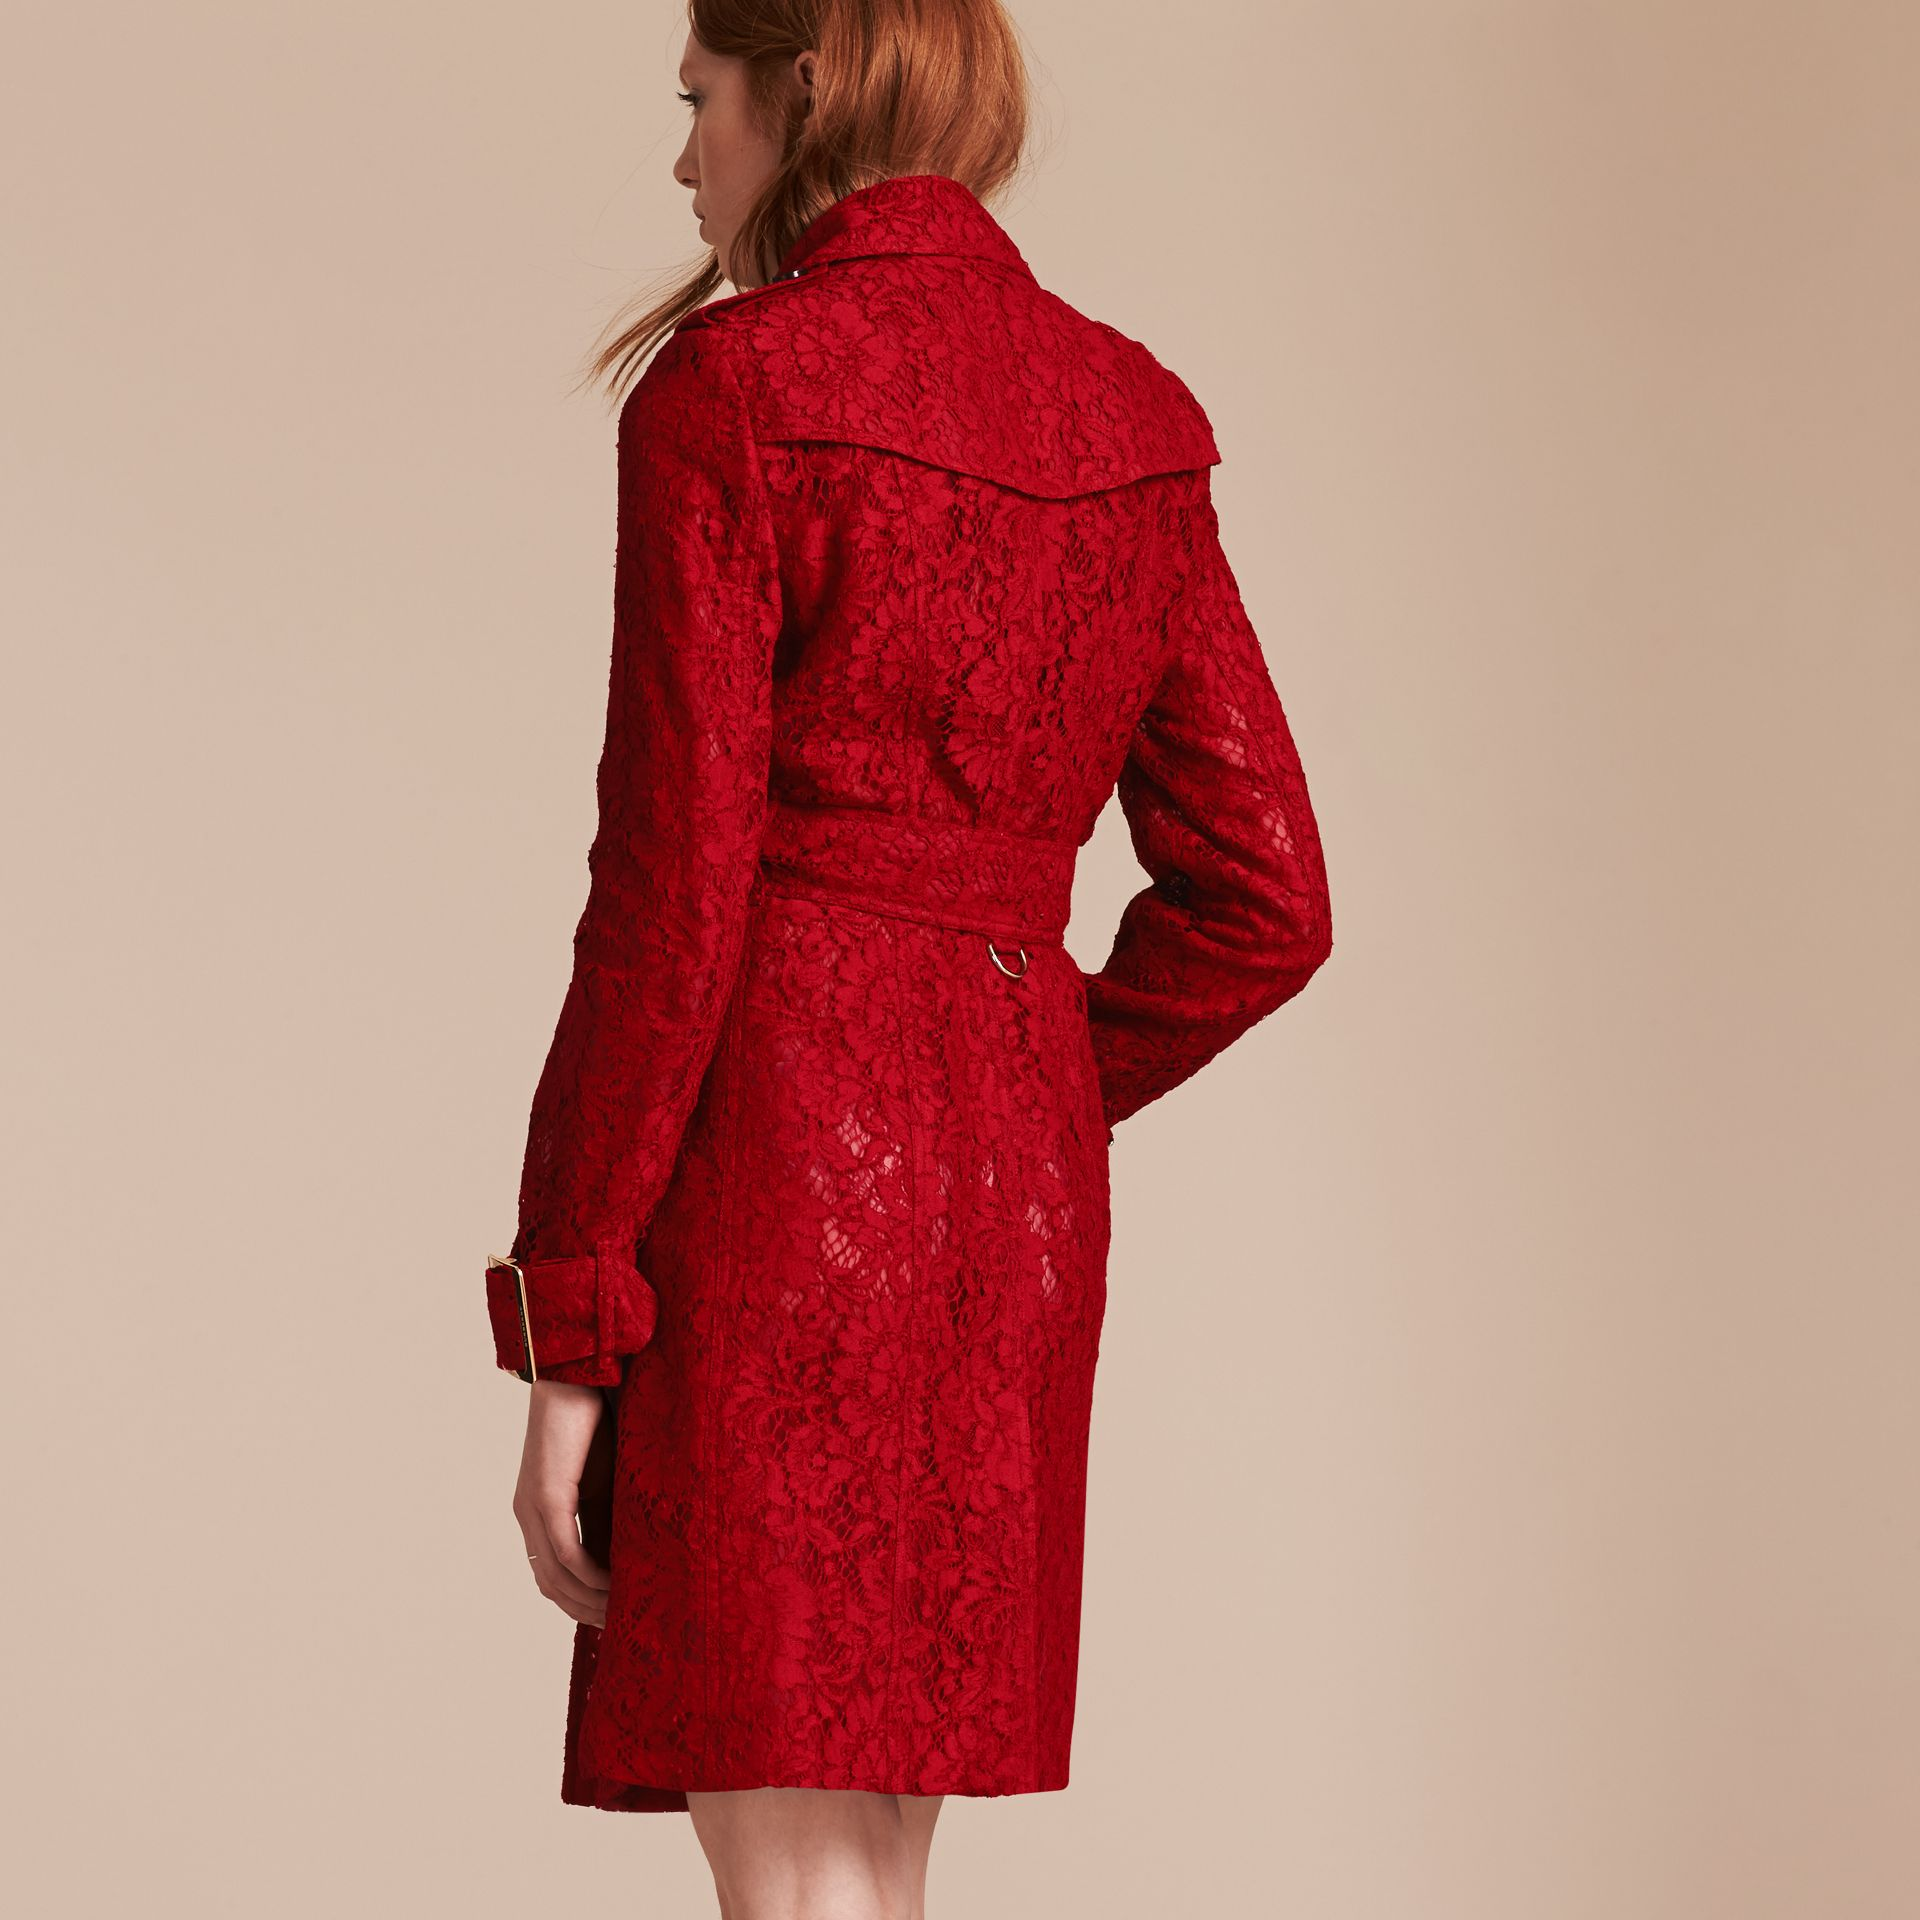 Parade red Lace Trench Coat - gallery image 3